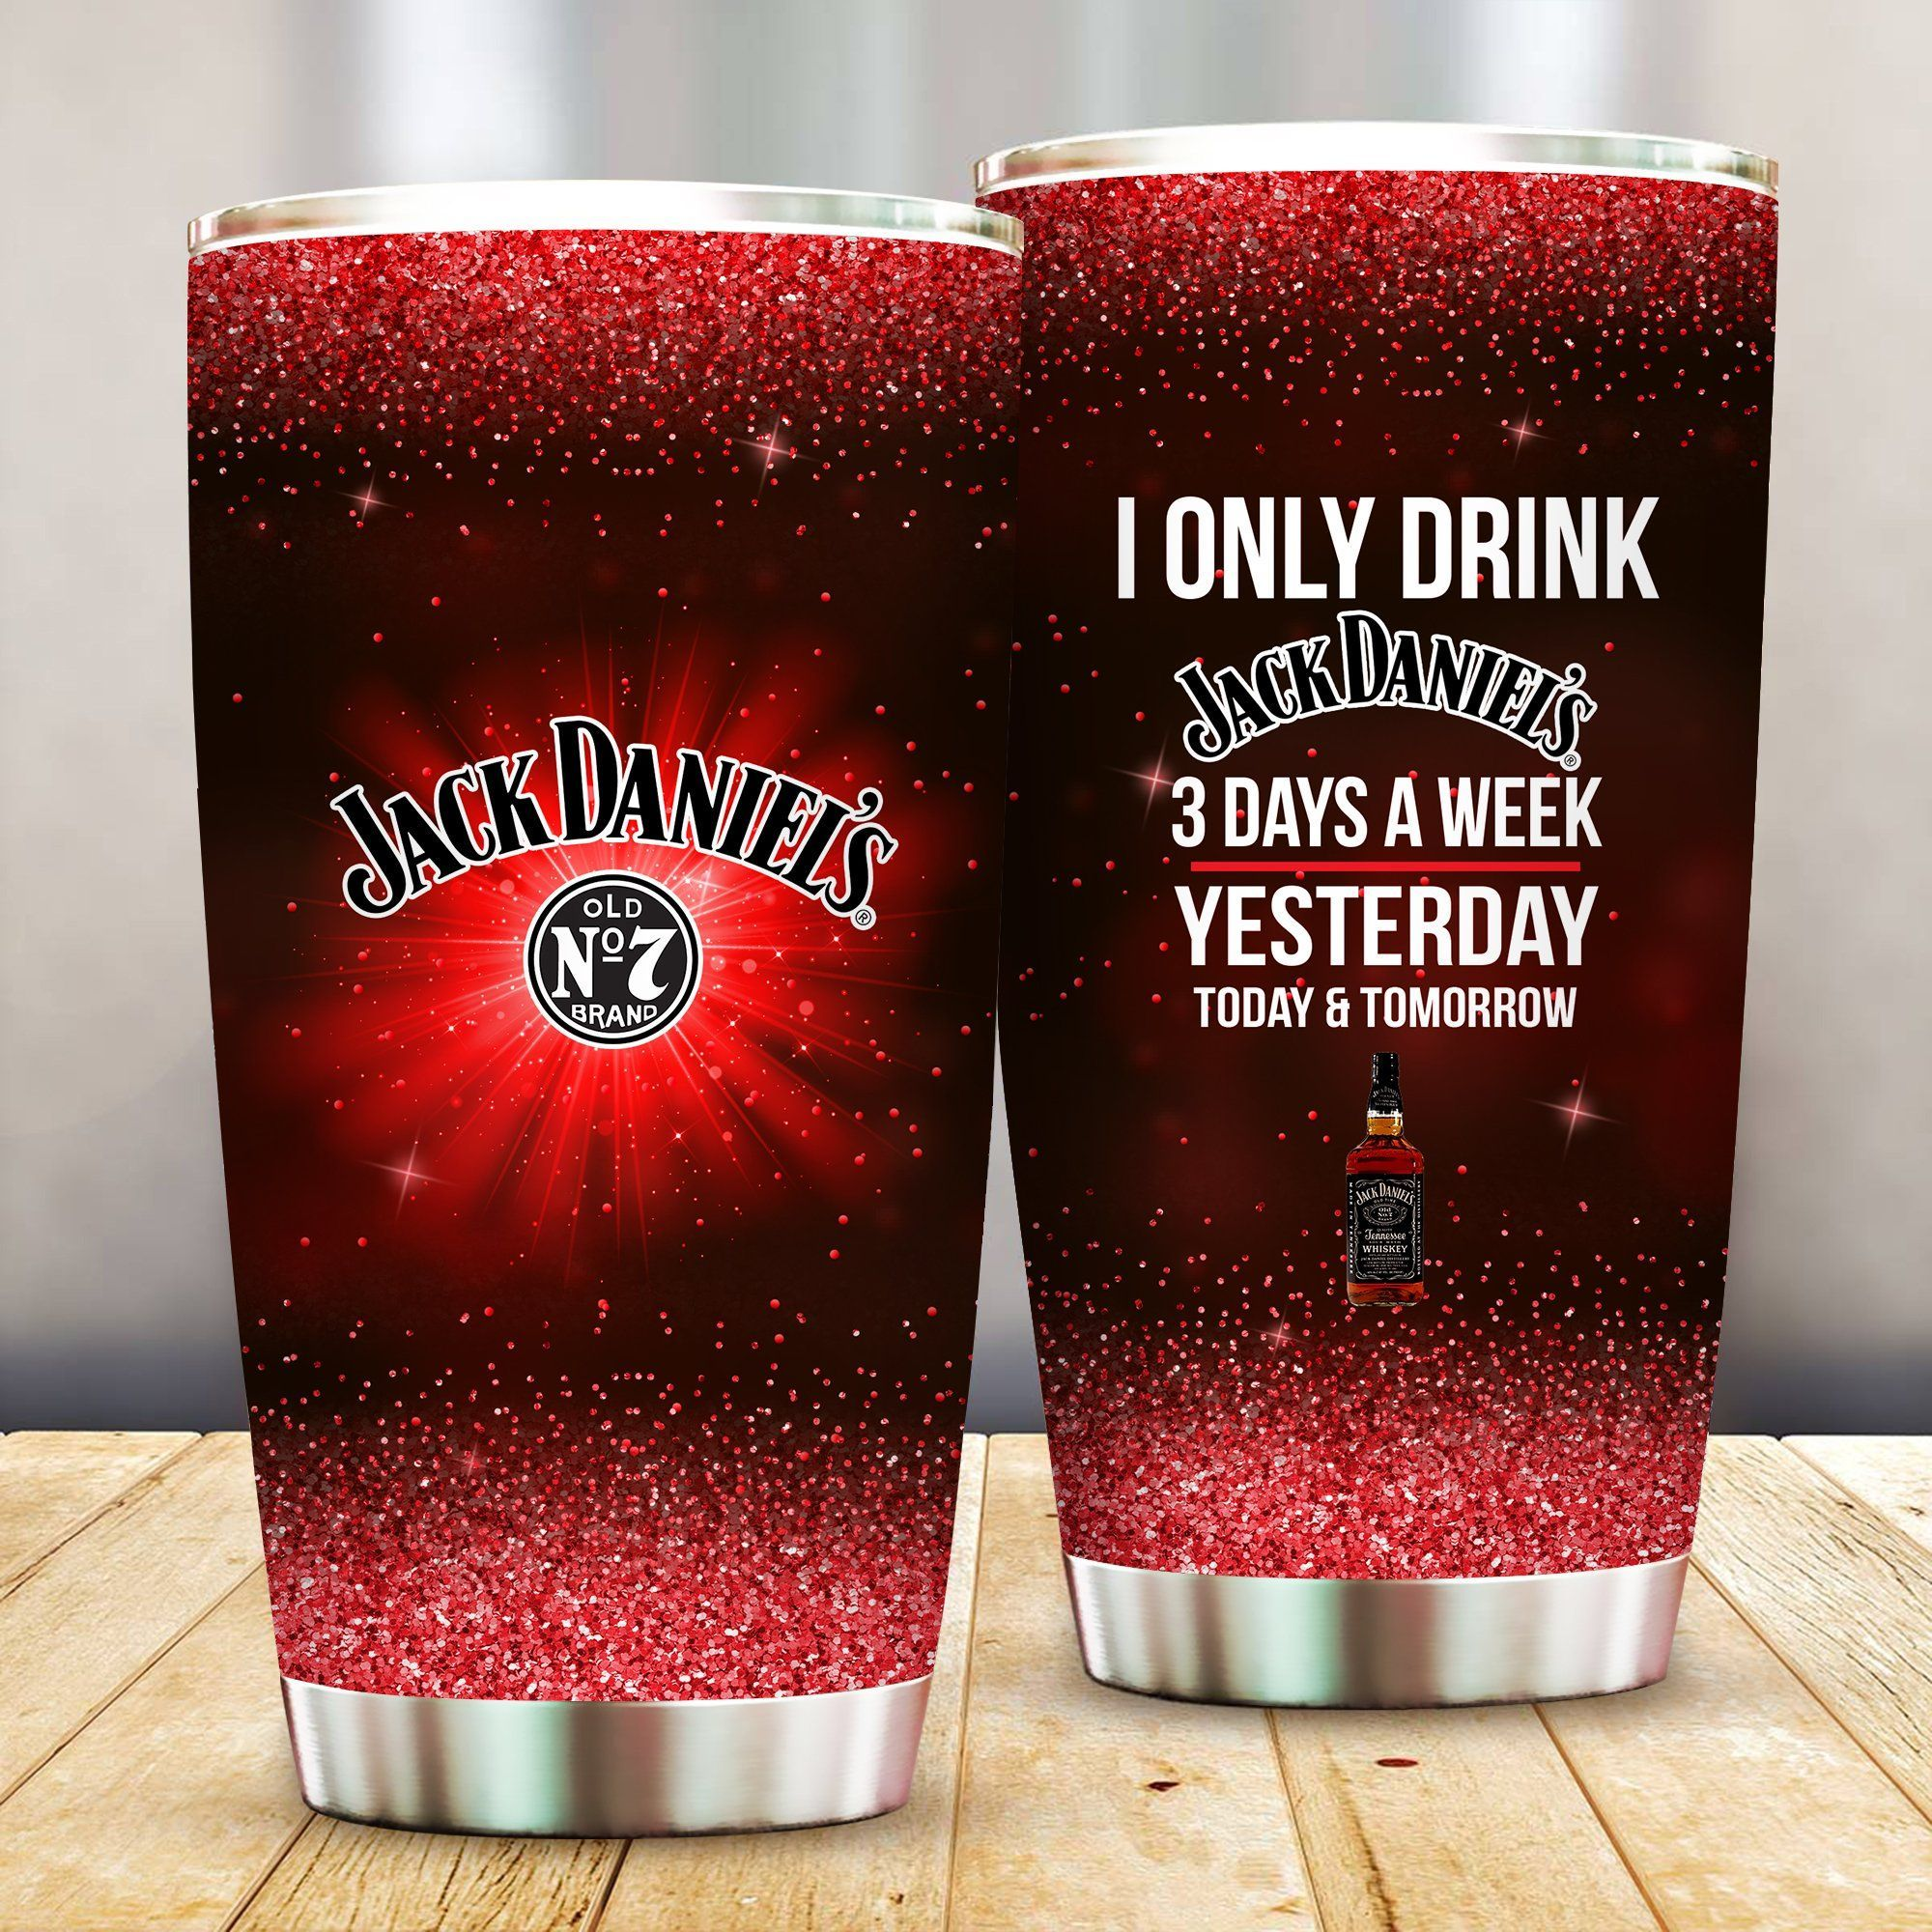 I Only Drink Jack Daniel's 3 Days A Week Yesterday Today and Tomorrow - Funny Customized Tumbler Cup Unisex Tshirt